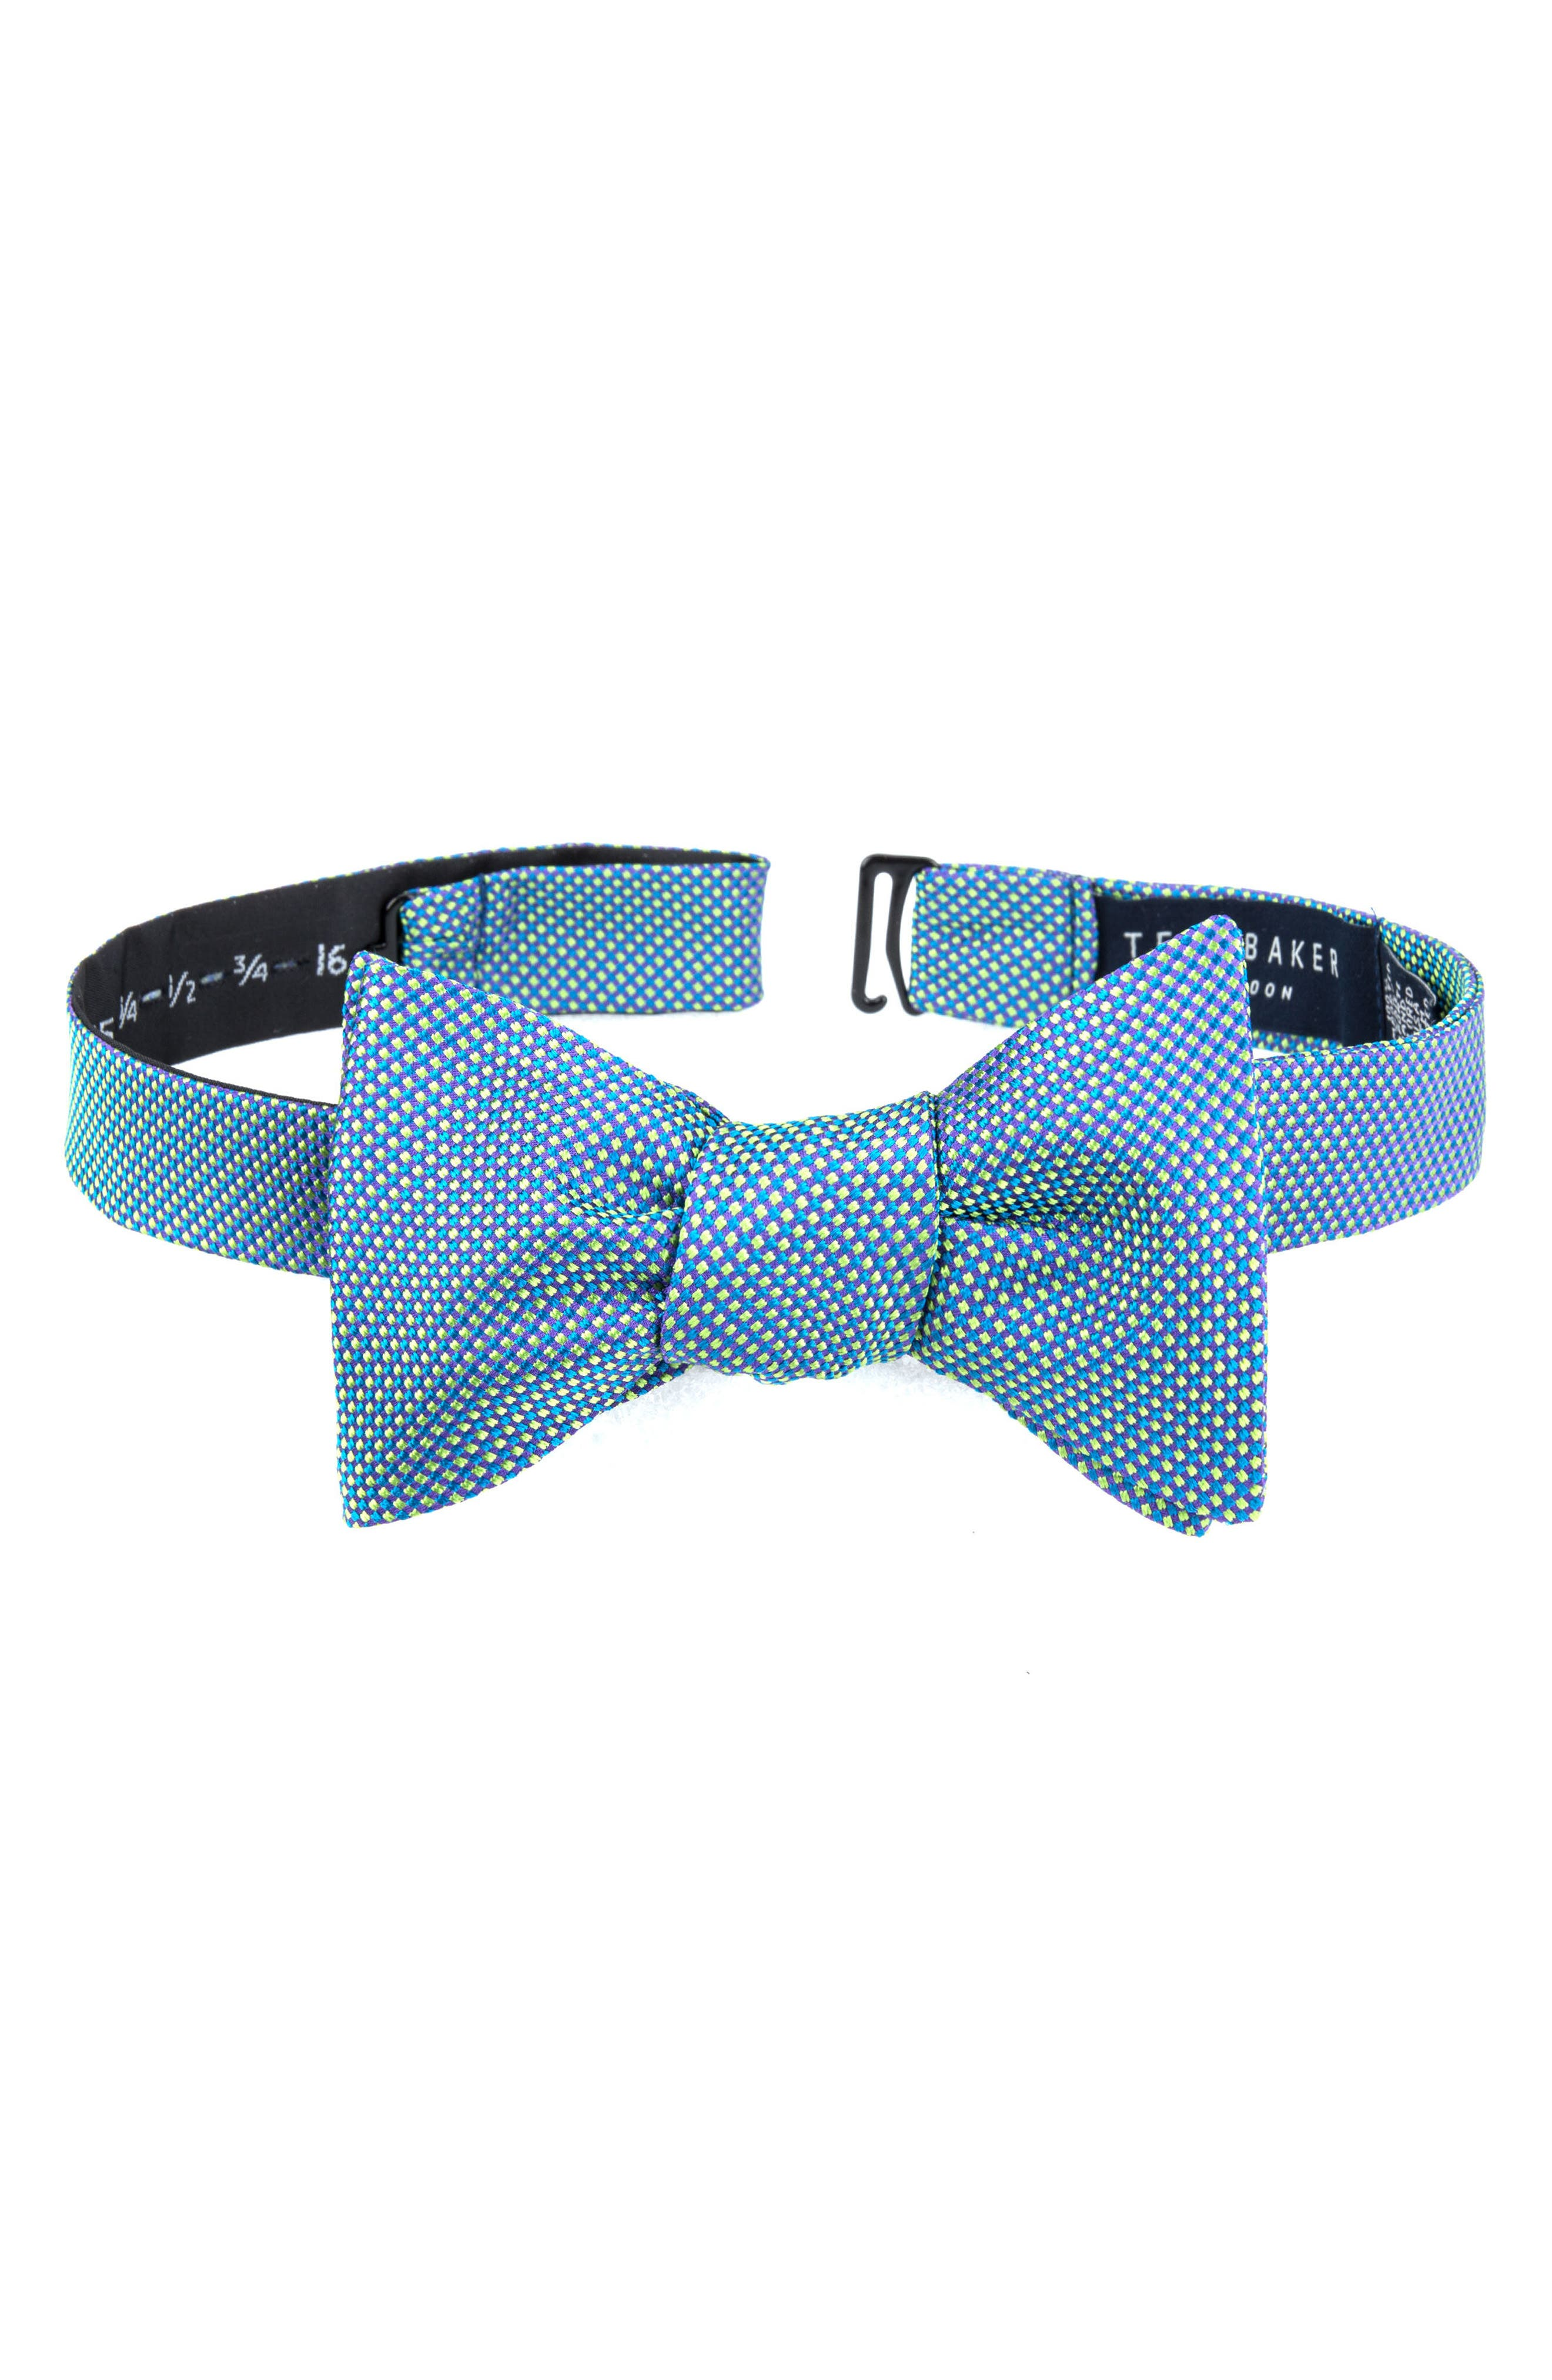 Natte Check Bow Tie,                             Main thumbnail 1, color,                             Green